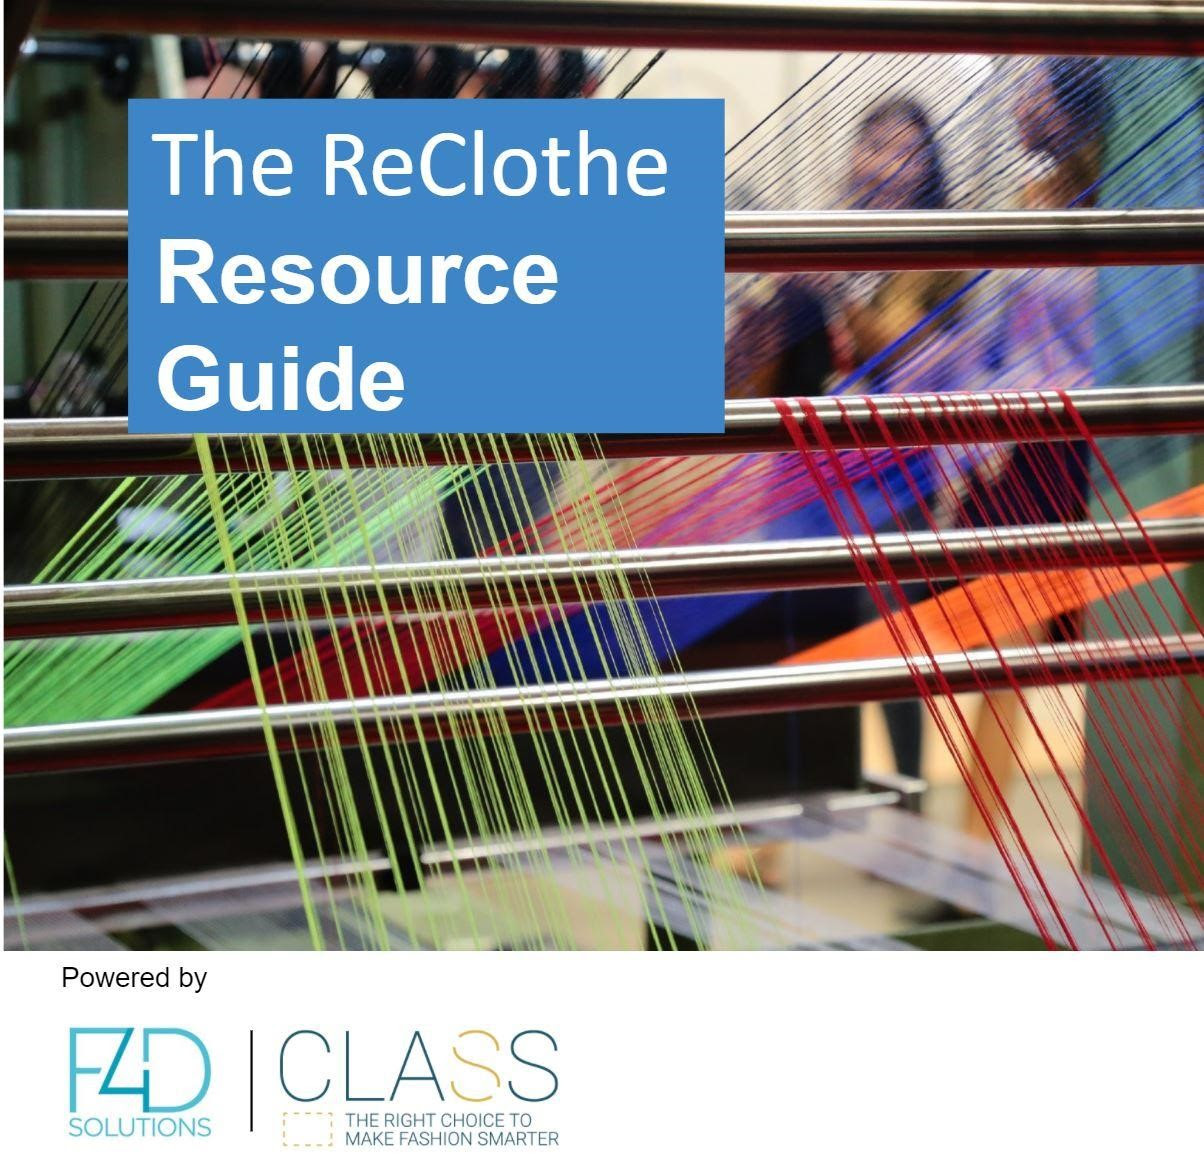 Fashion 4 Development & C.L.A.S.S. to launch:  The Recloth Resource Guide